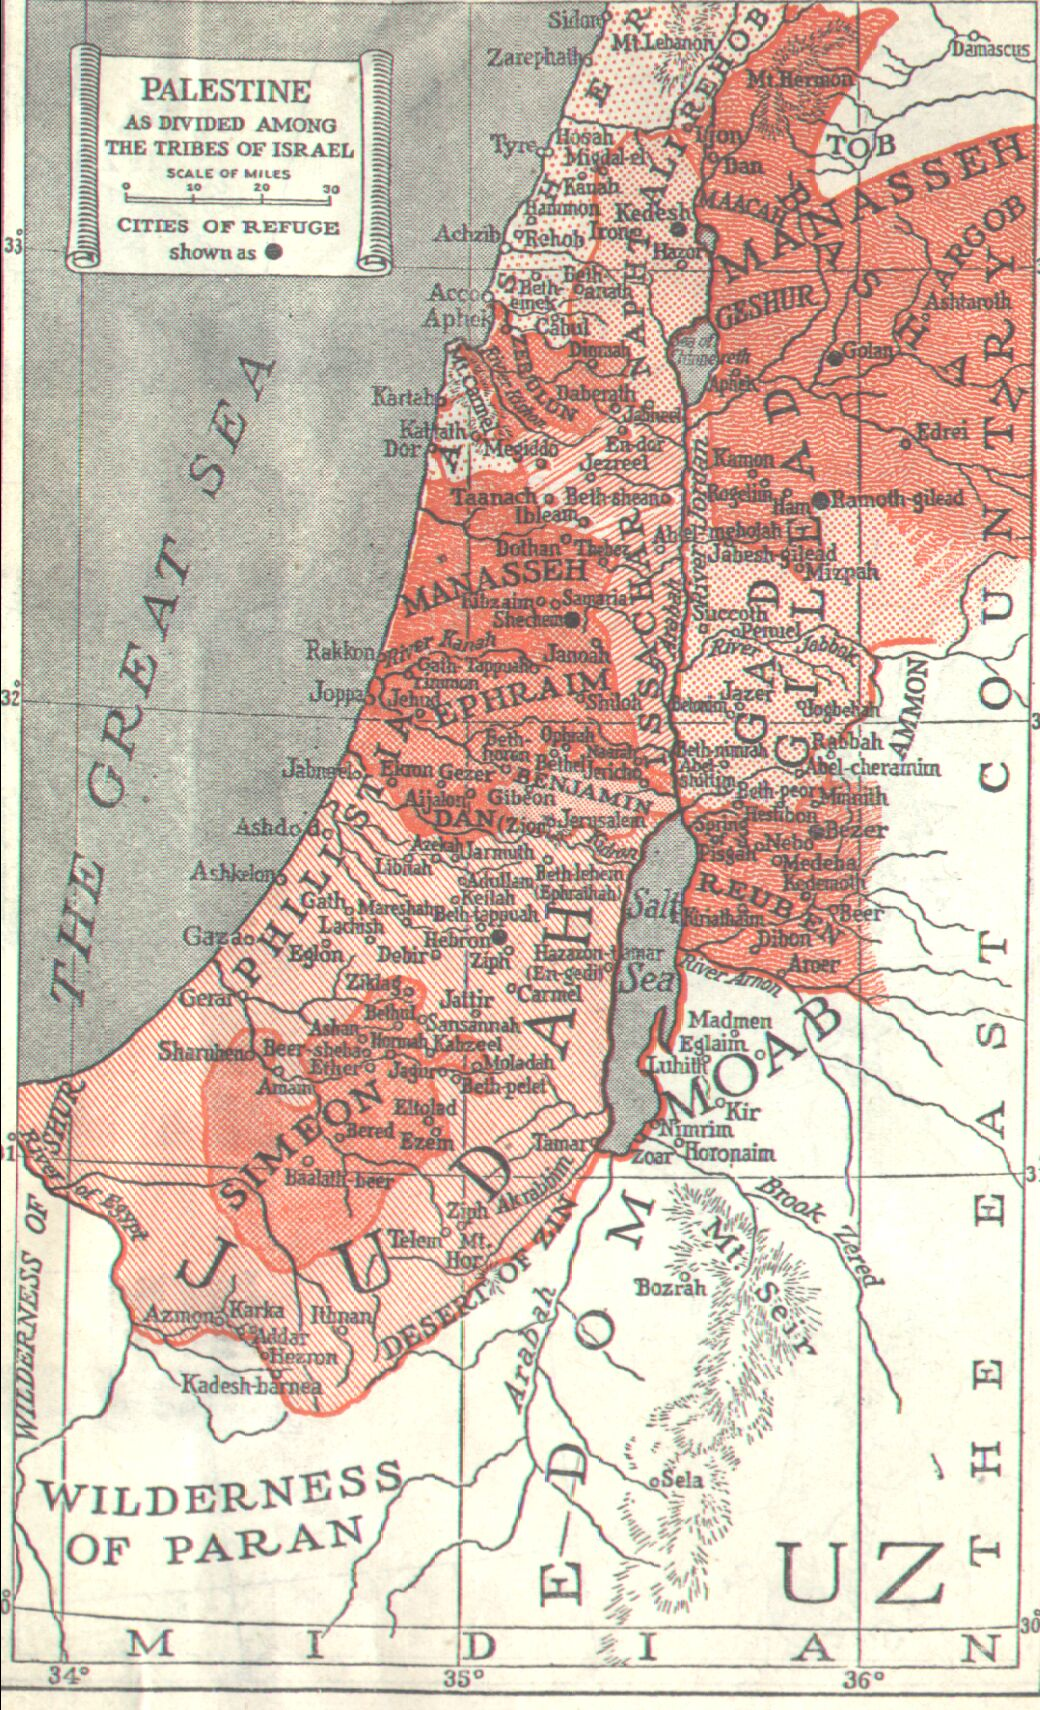 http://www.christianityoasis.com/images/Boundaries%20of%20the%20Tribes%20of%20Israel.jpg